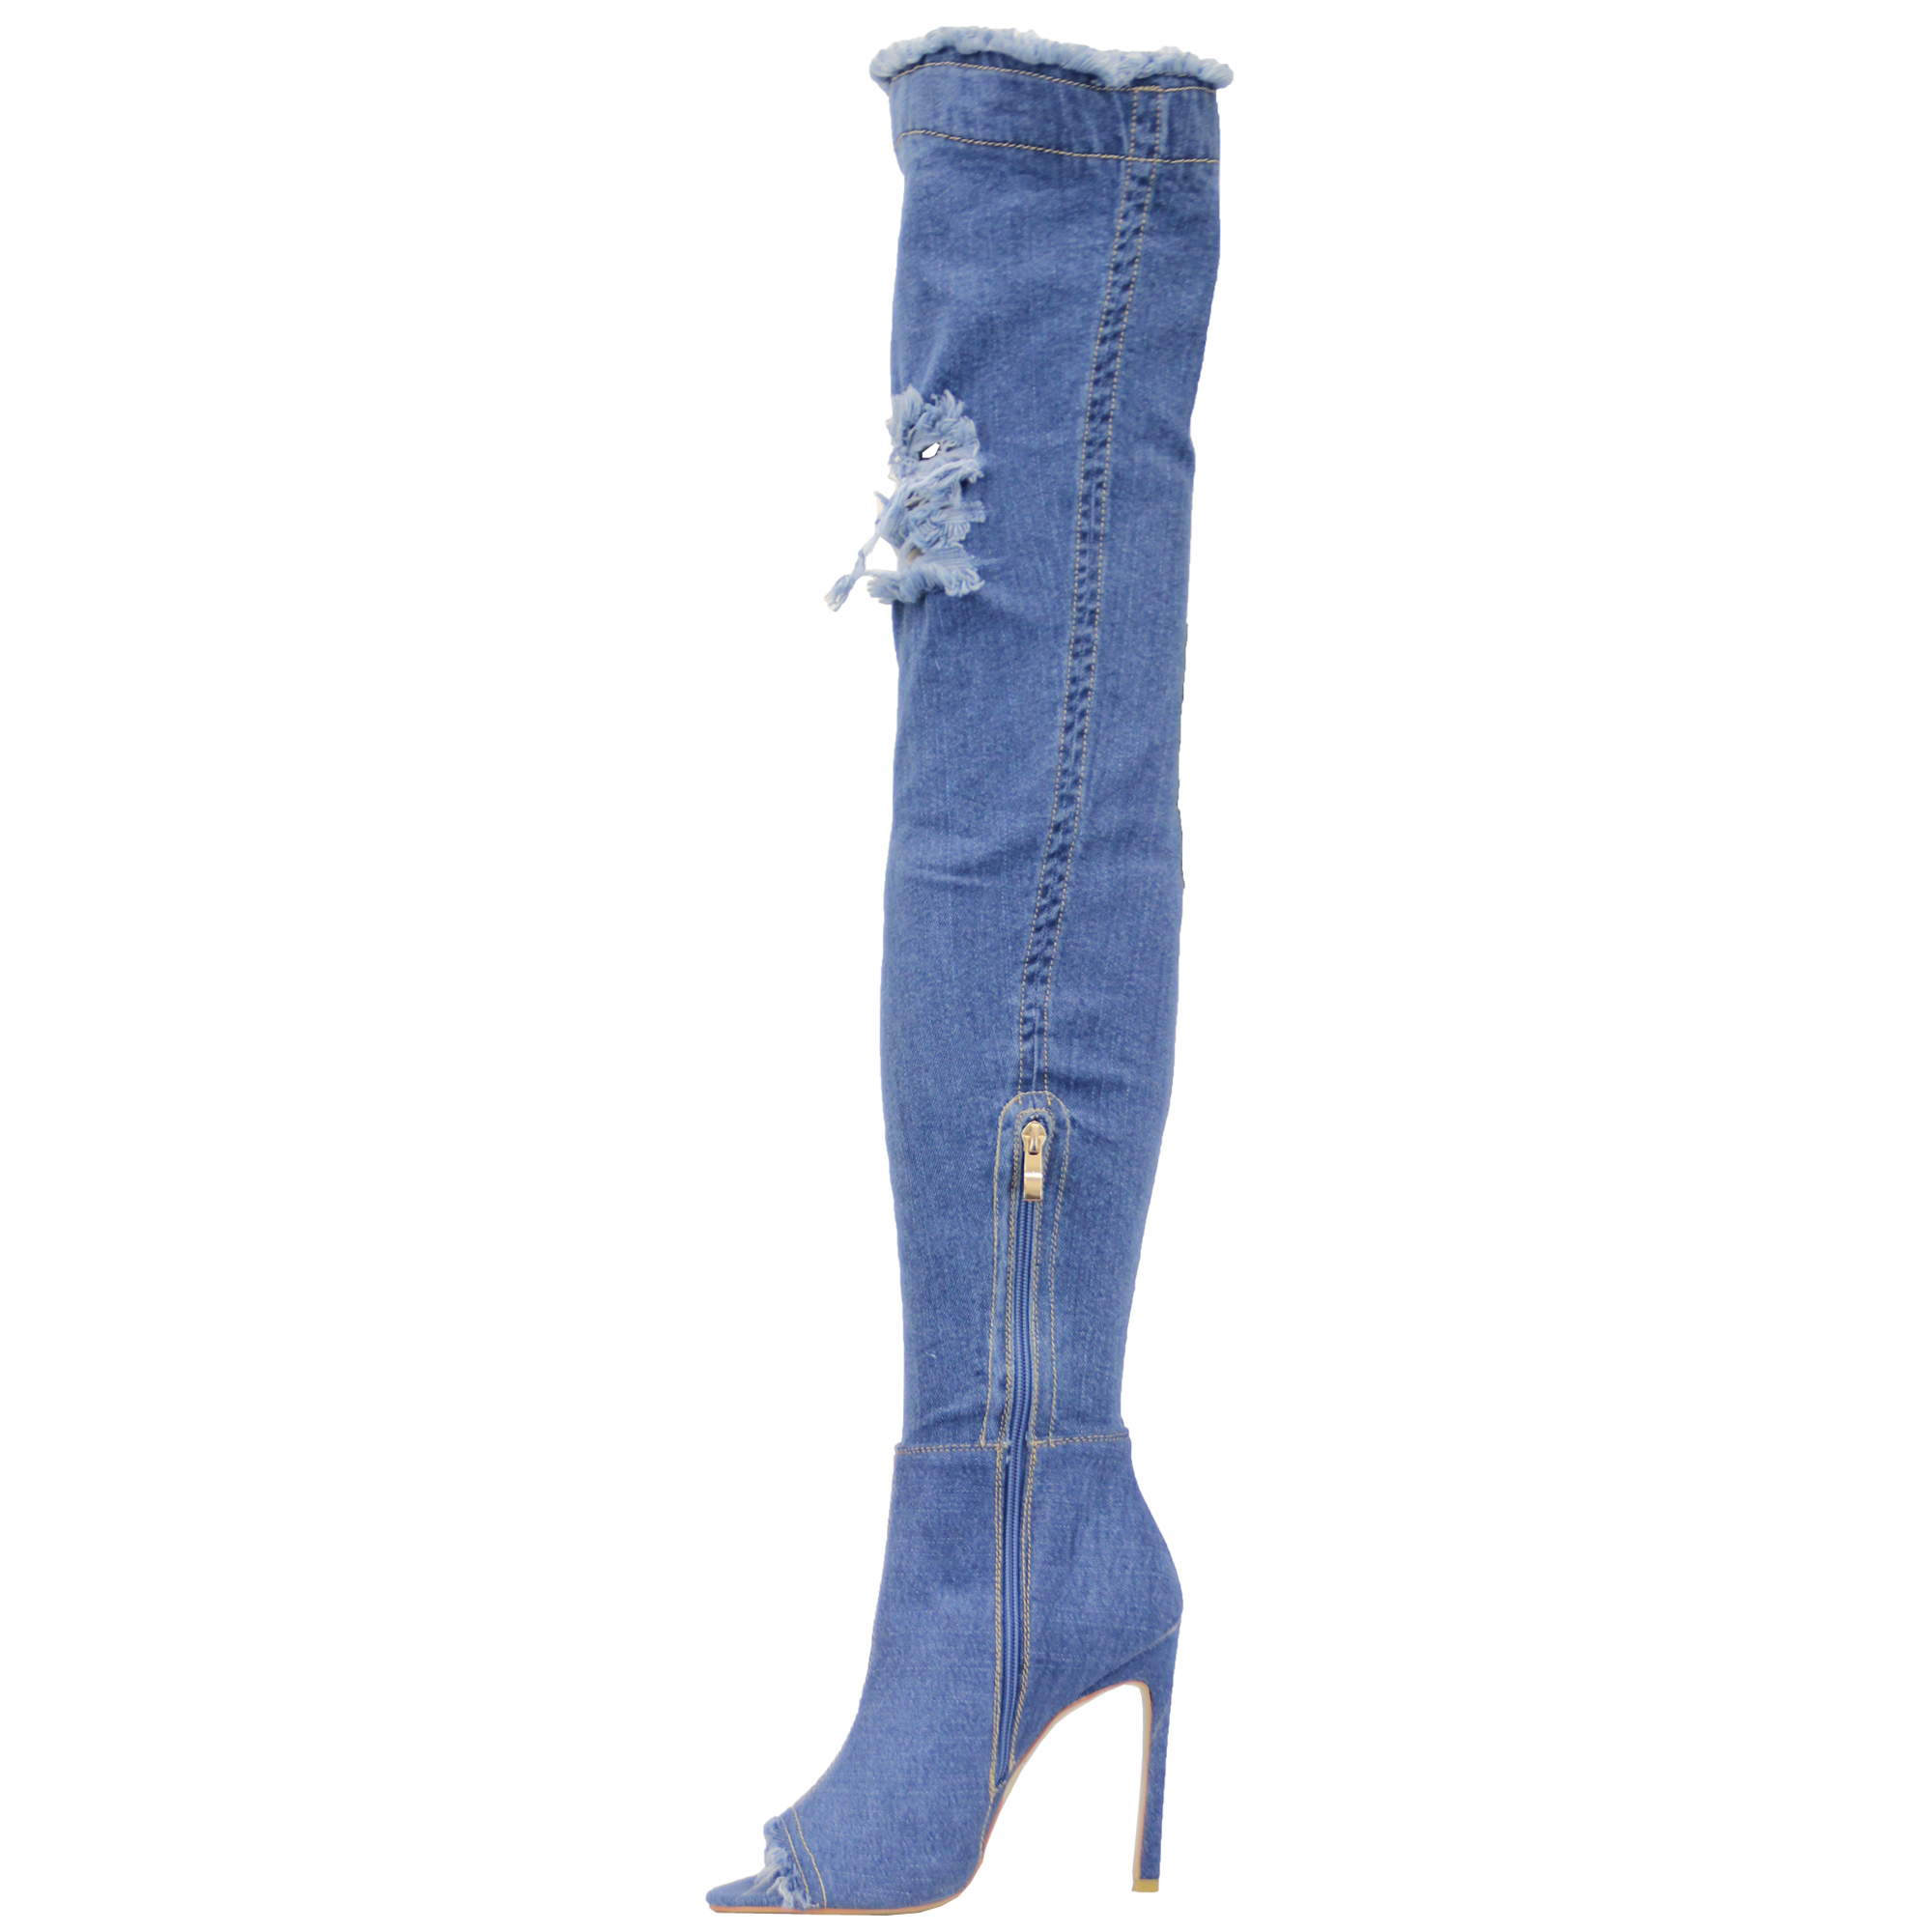 2f1c2645431 Ladies Over The Knee Denim Boots Womens Ripped Peeptoe Thigh High ...